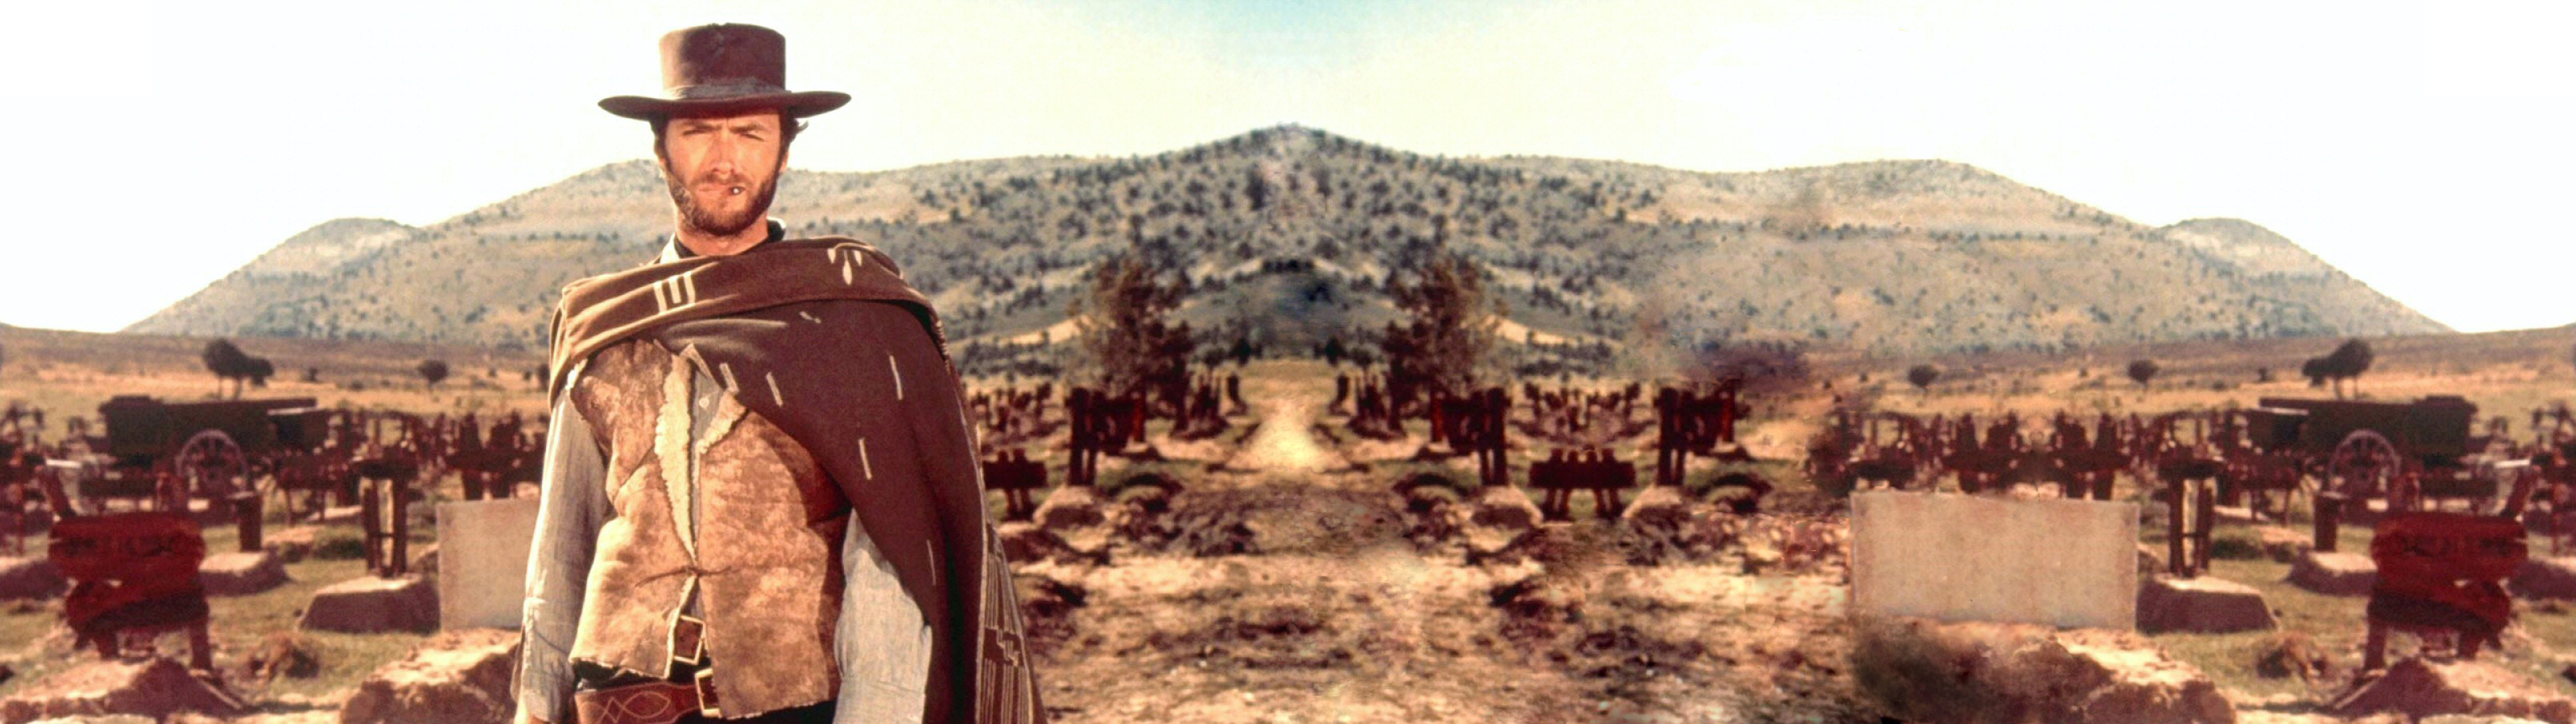 Free Download The Good The Bad And The Ugly Western Clint Eastwood